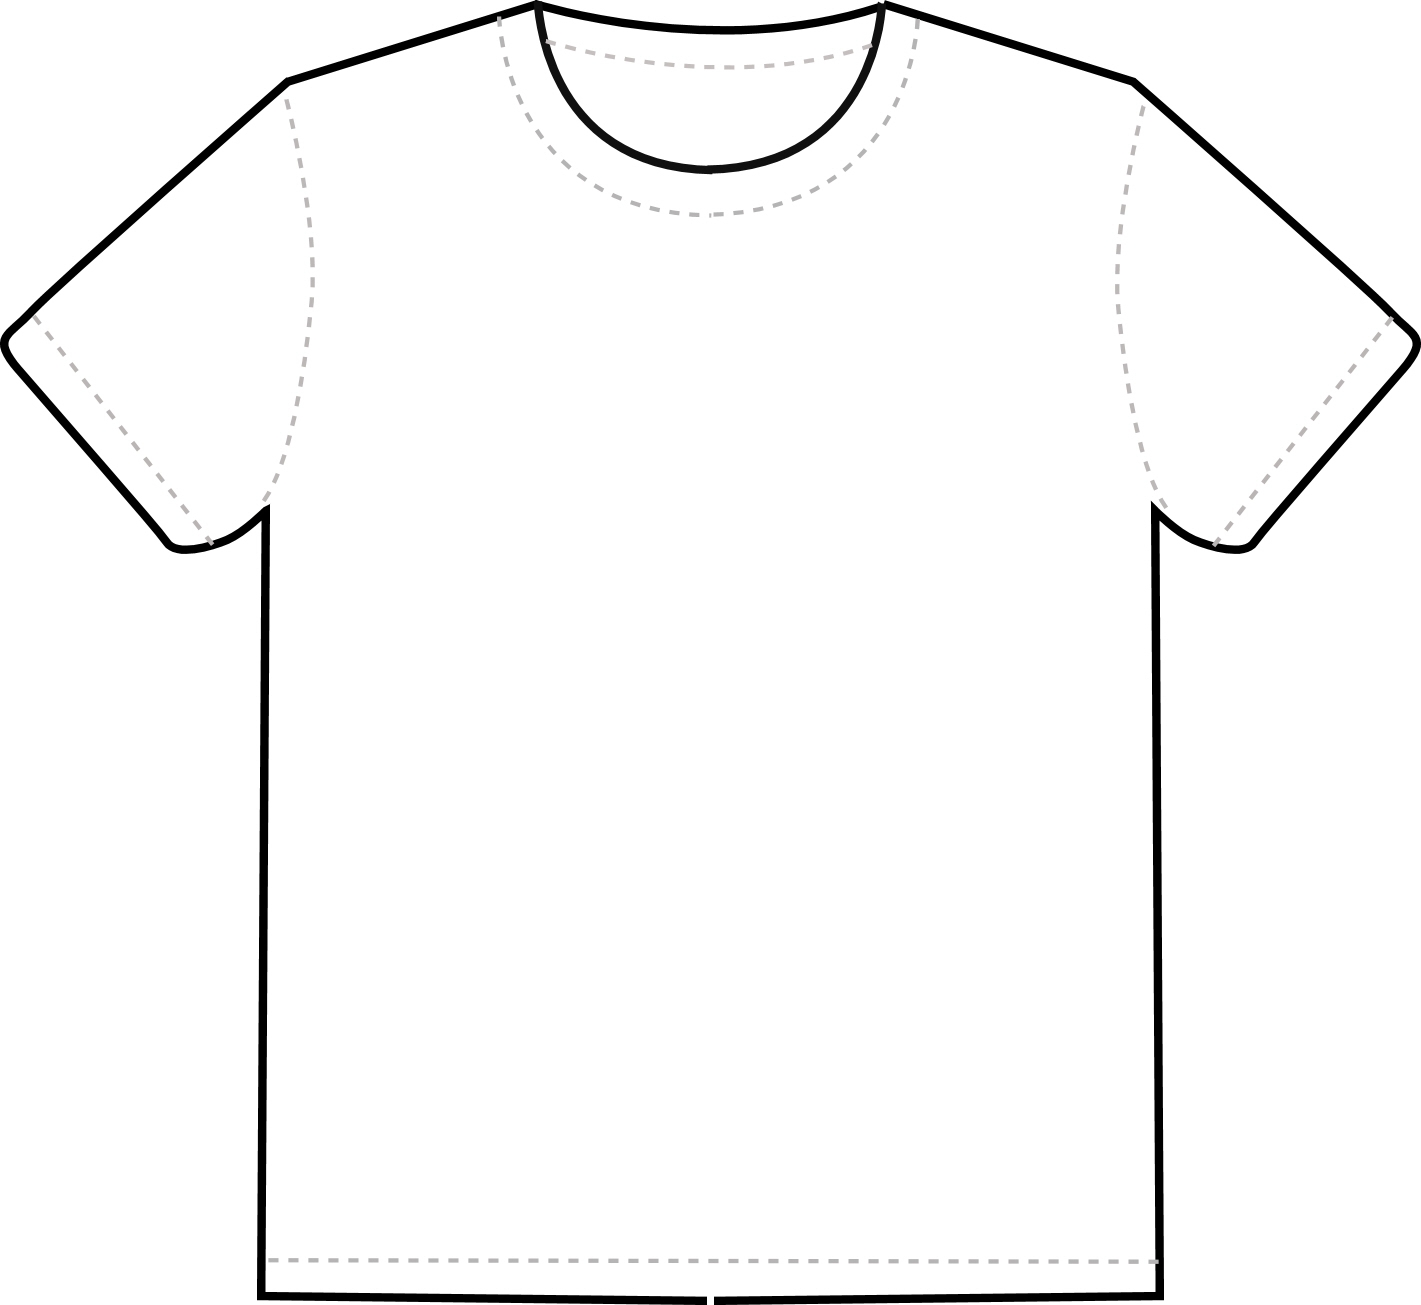 1421x1305 Shirt Clipart Black And White